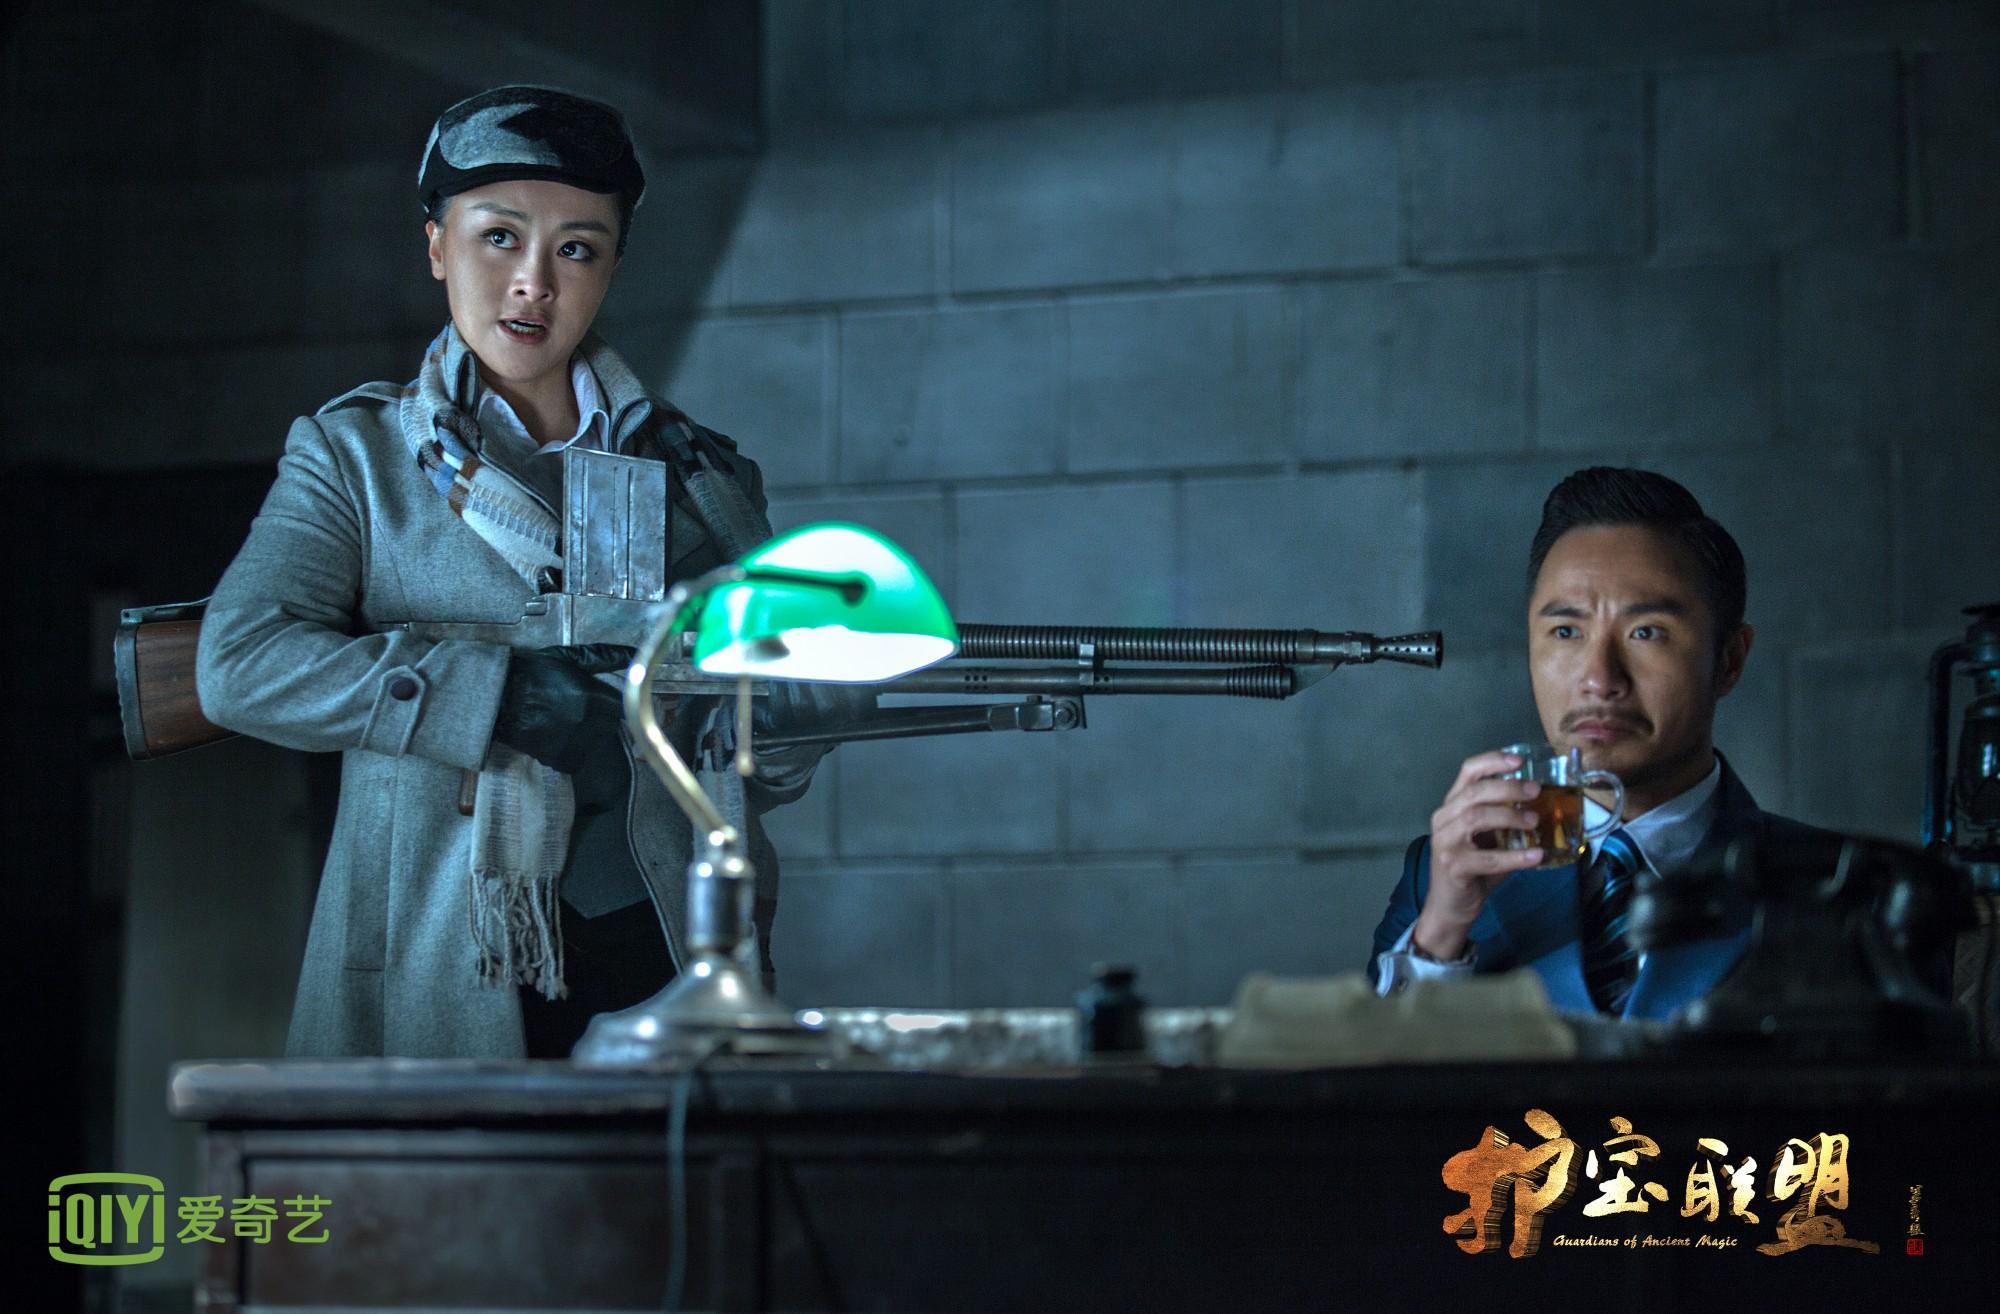 The Yubao Alliance' Ming-xiang Guo and Wang Bo's fake drama really do